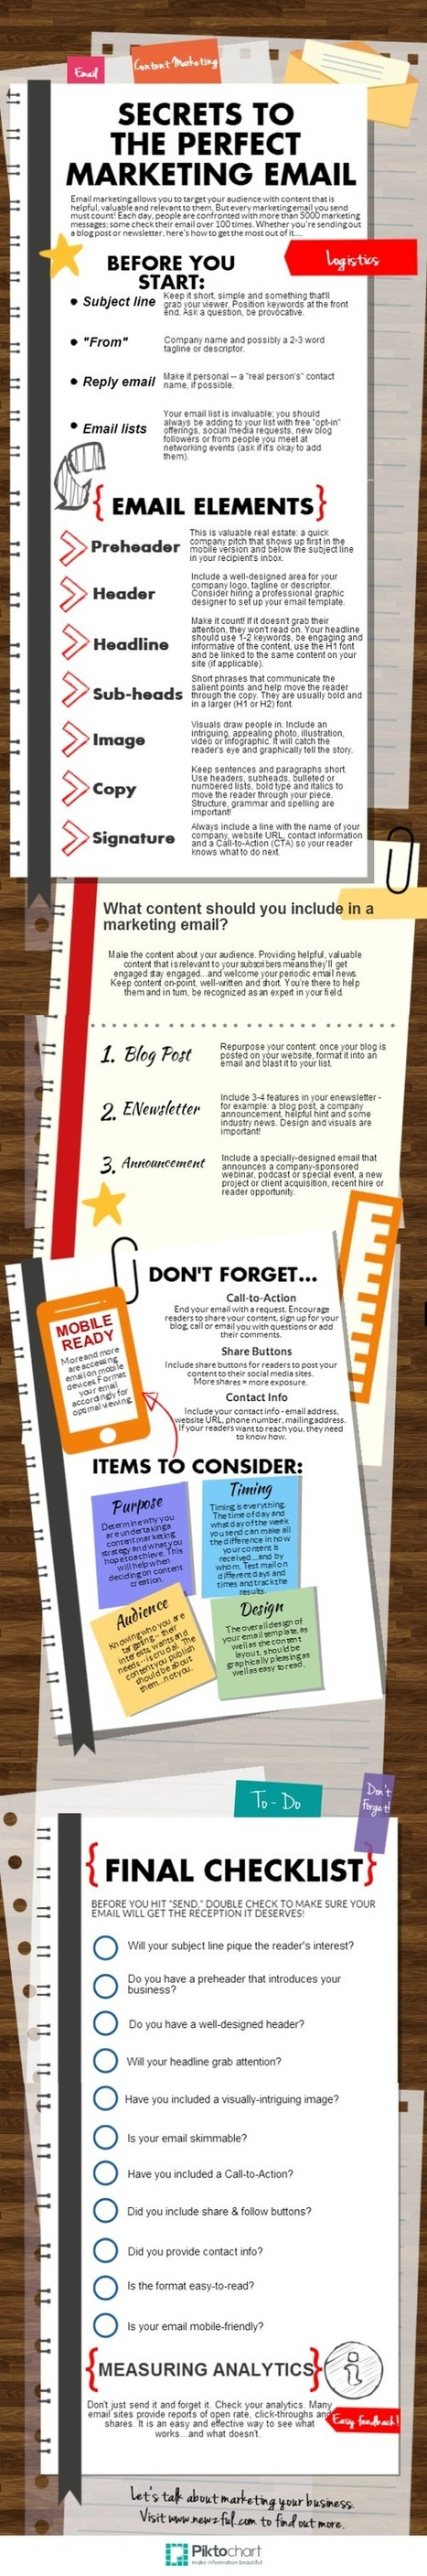 Secrets to the Perfect Marketing Email #infographic | MarketingHits | Scoop.it